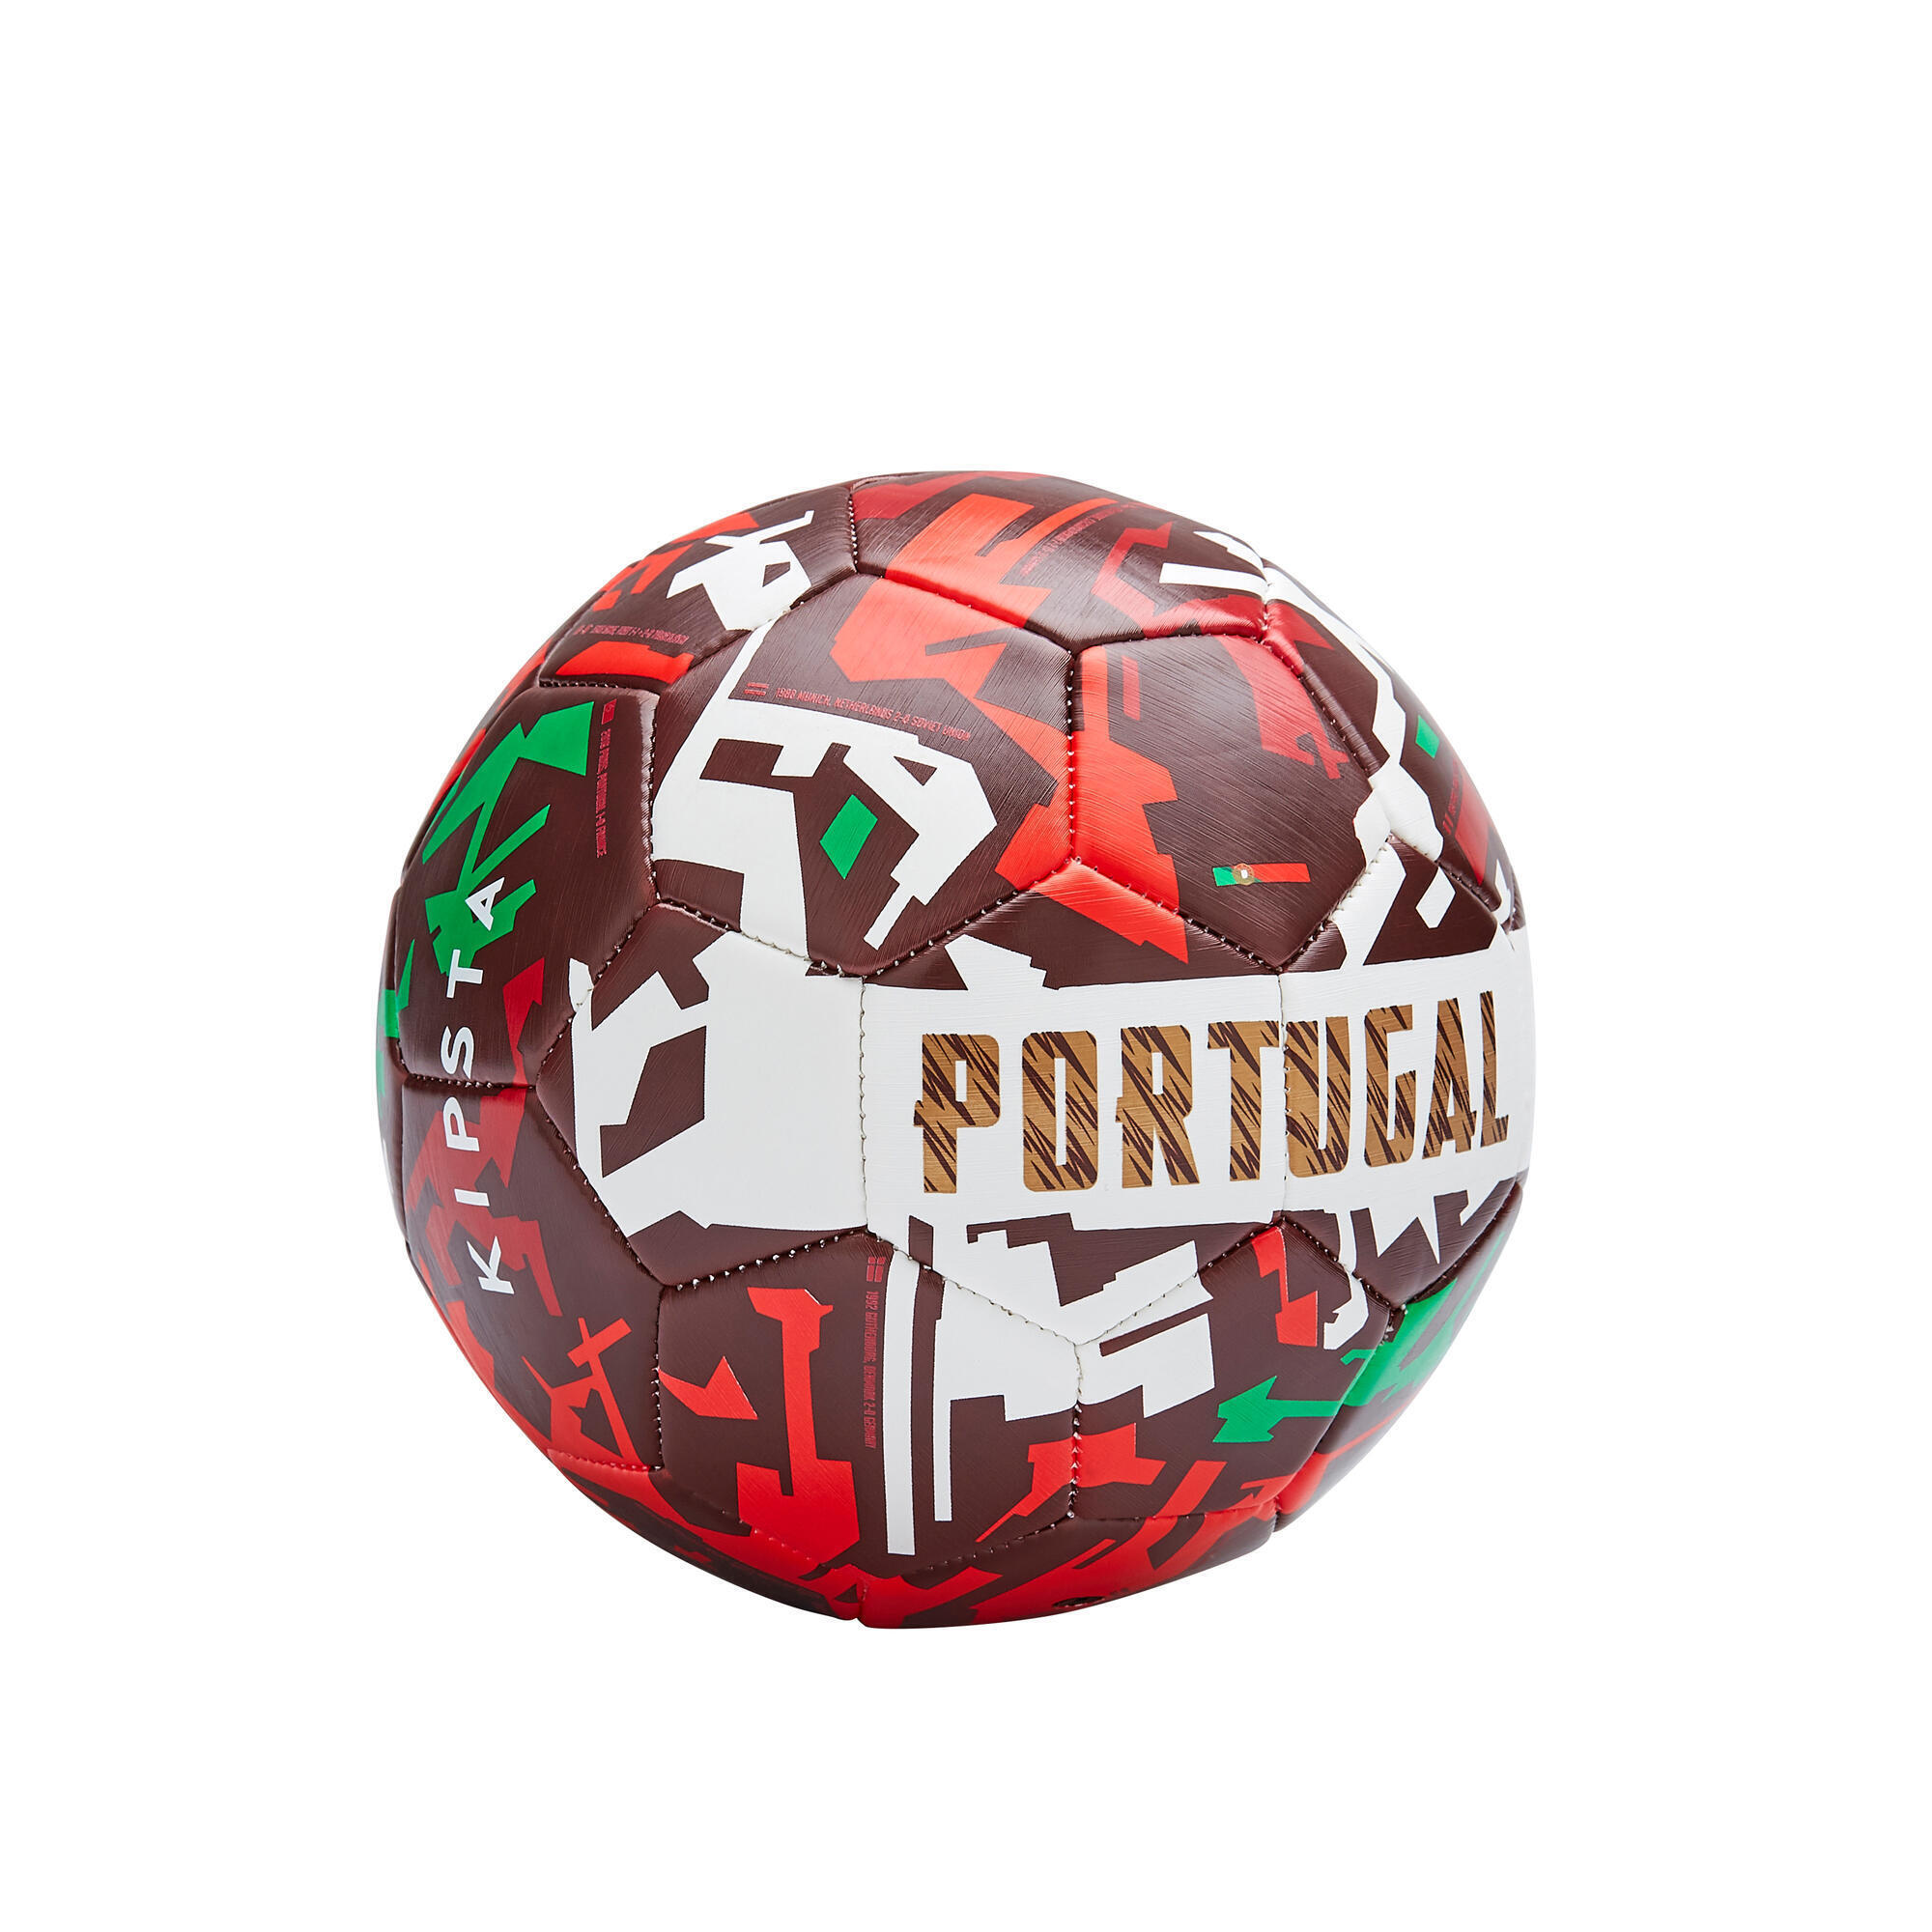 Ballon de <strong>football</strong> portugal 2020 size 1 kipsta